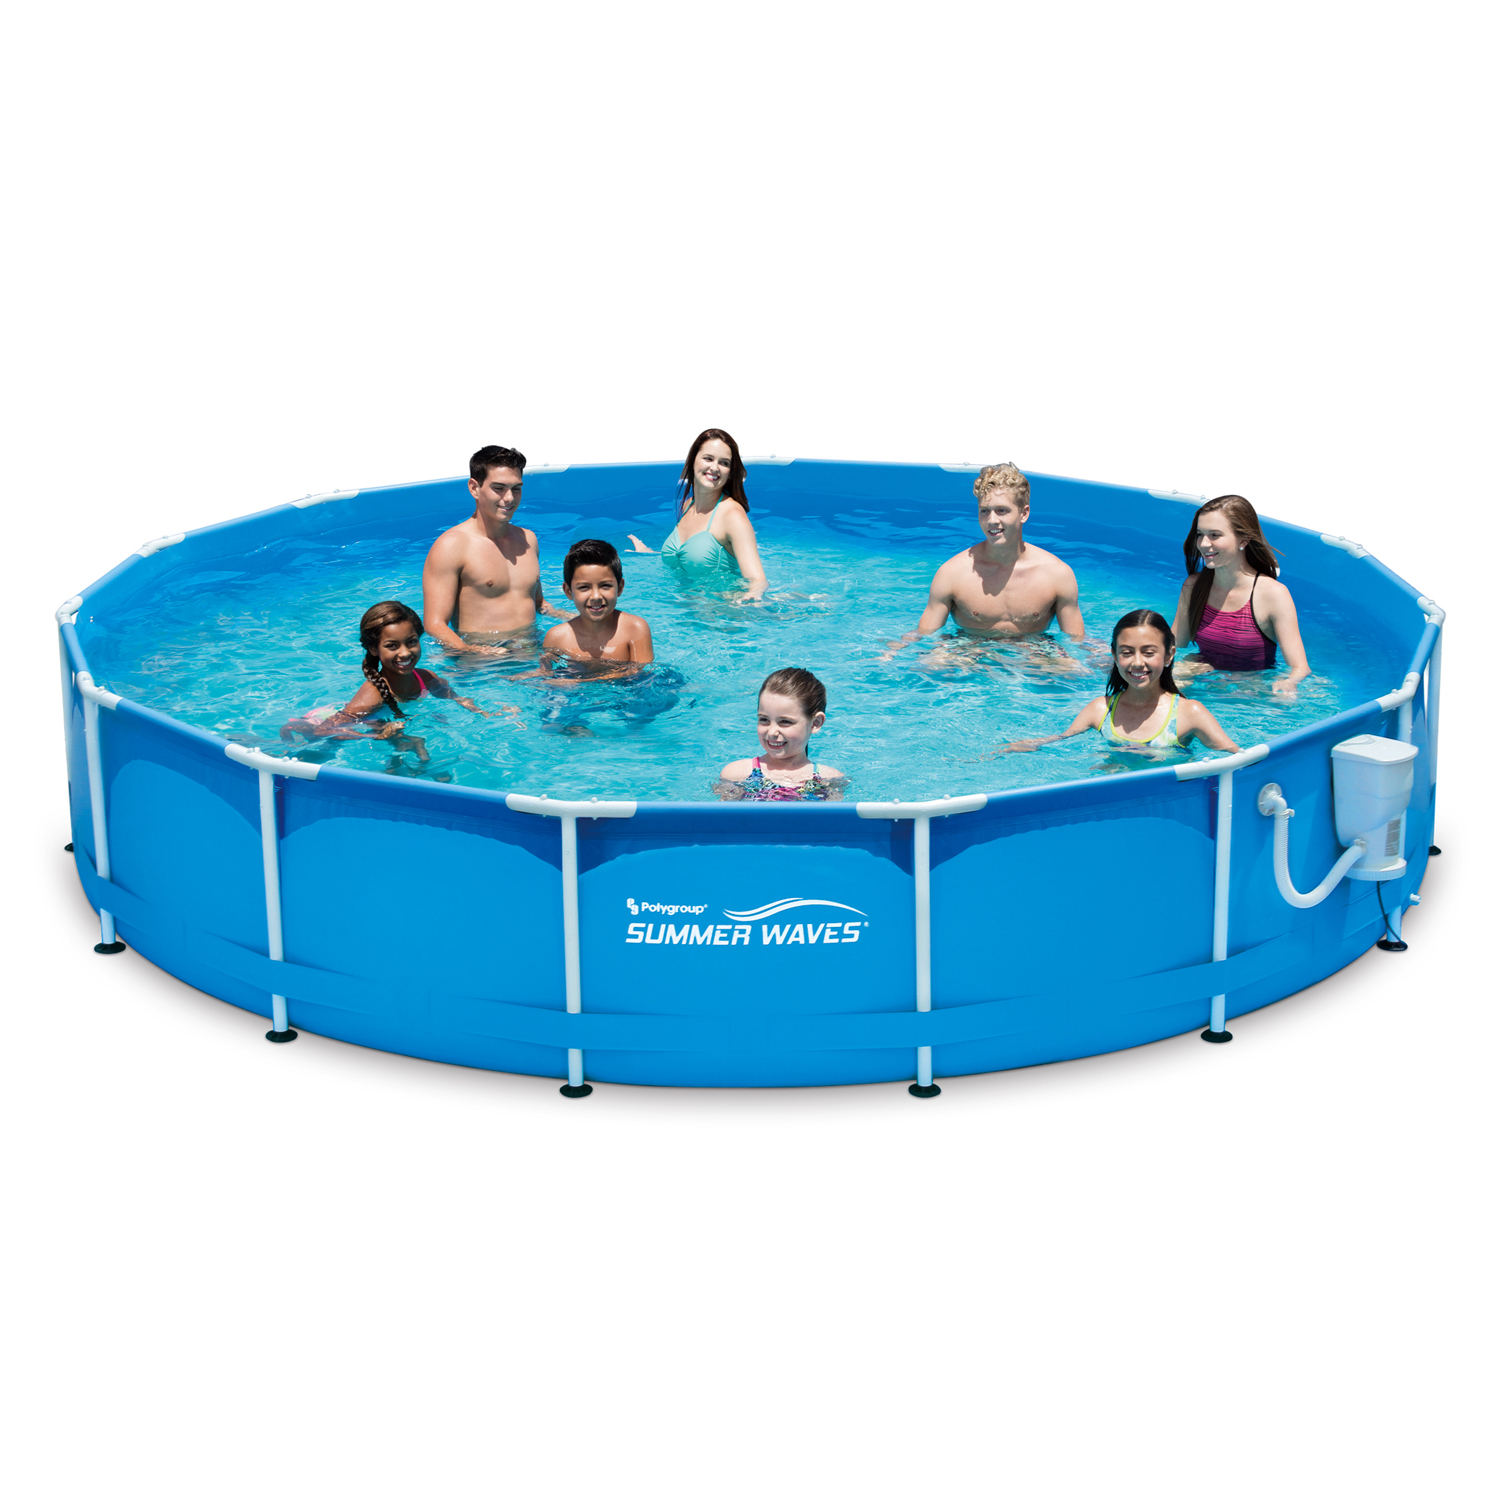 "Summer Waves 15' x 33"" Metal Frame Pool Above Ground Swimming Pool with Filter Pump System"